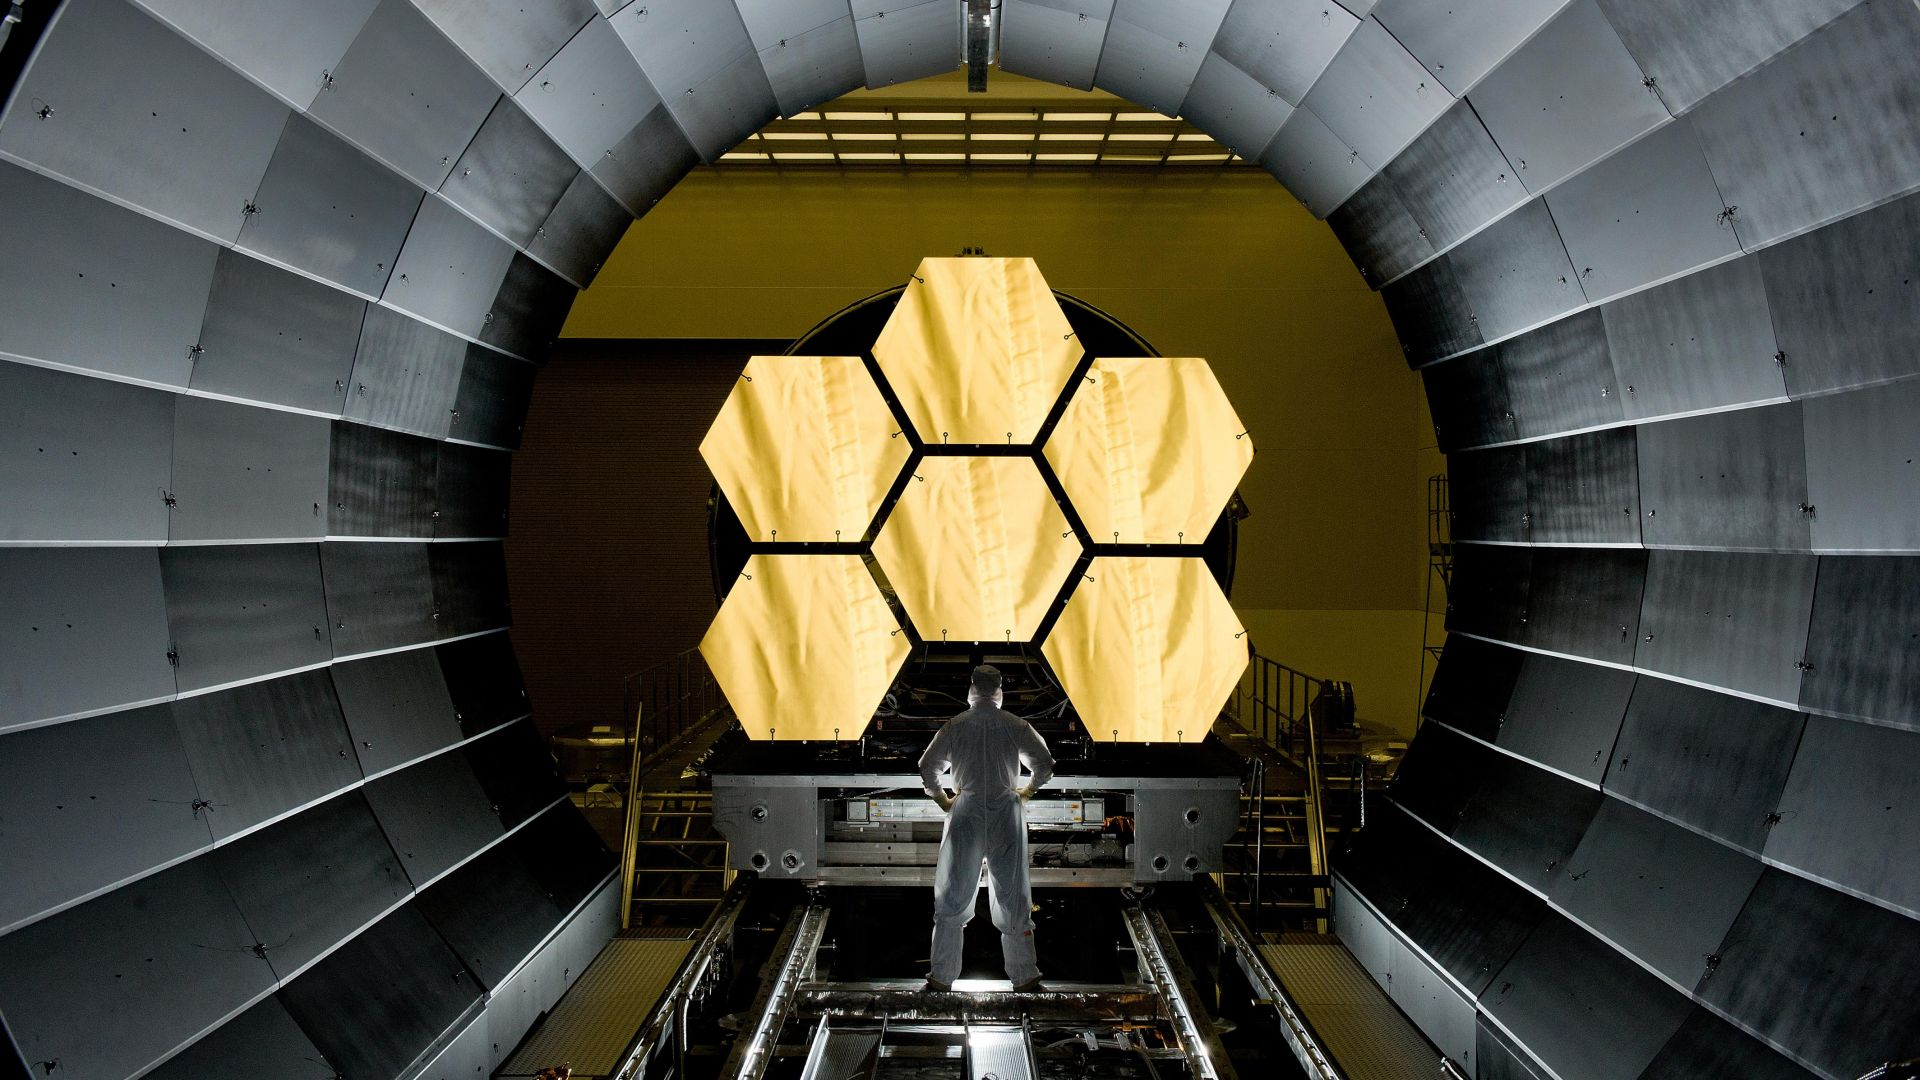 Джеймс Вебб, телескоп, космос, НАСА, James Webb Space Telescope, space, NASA (horizontal)